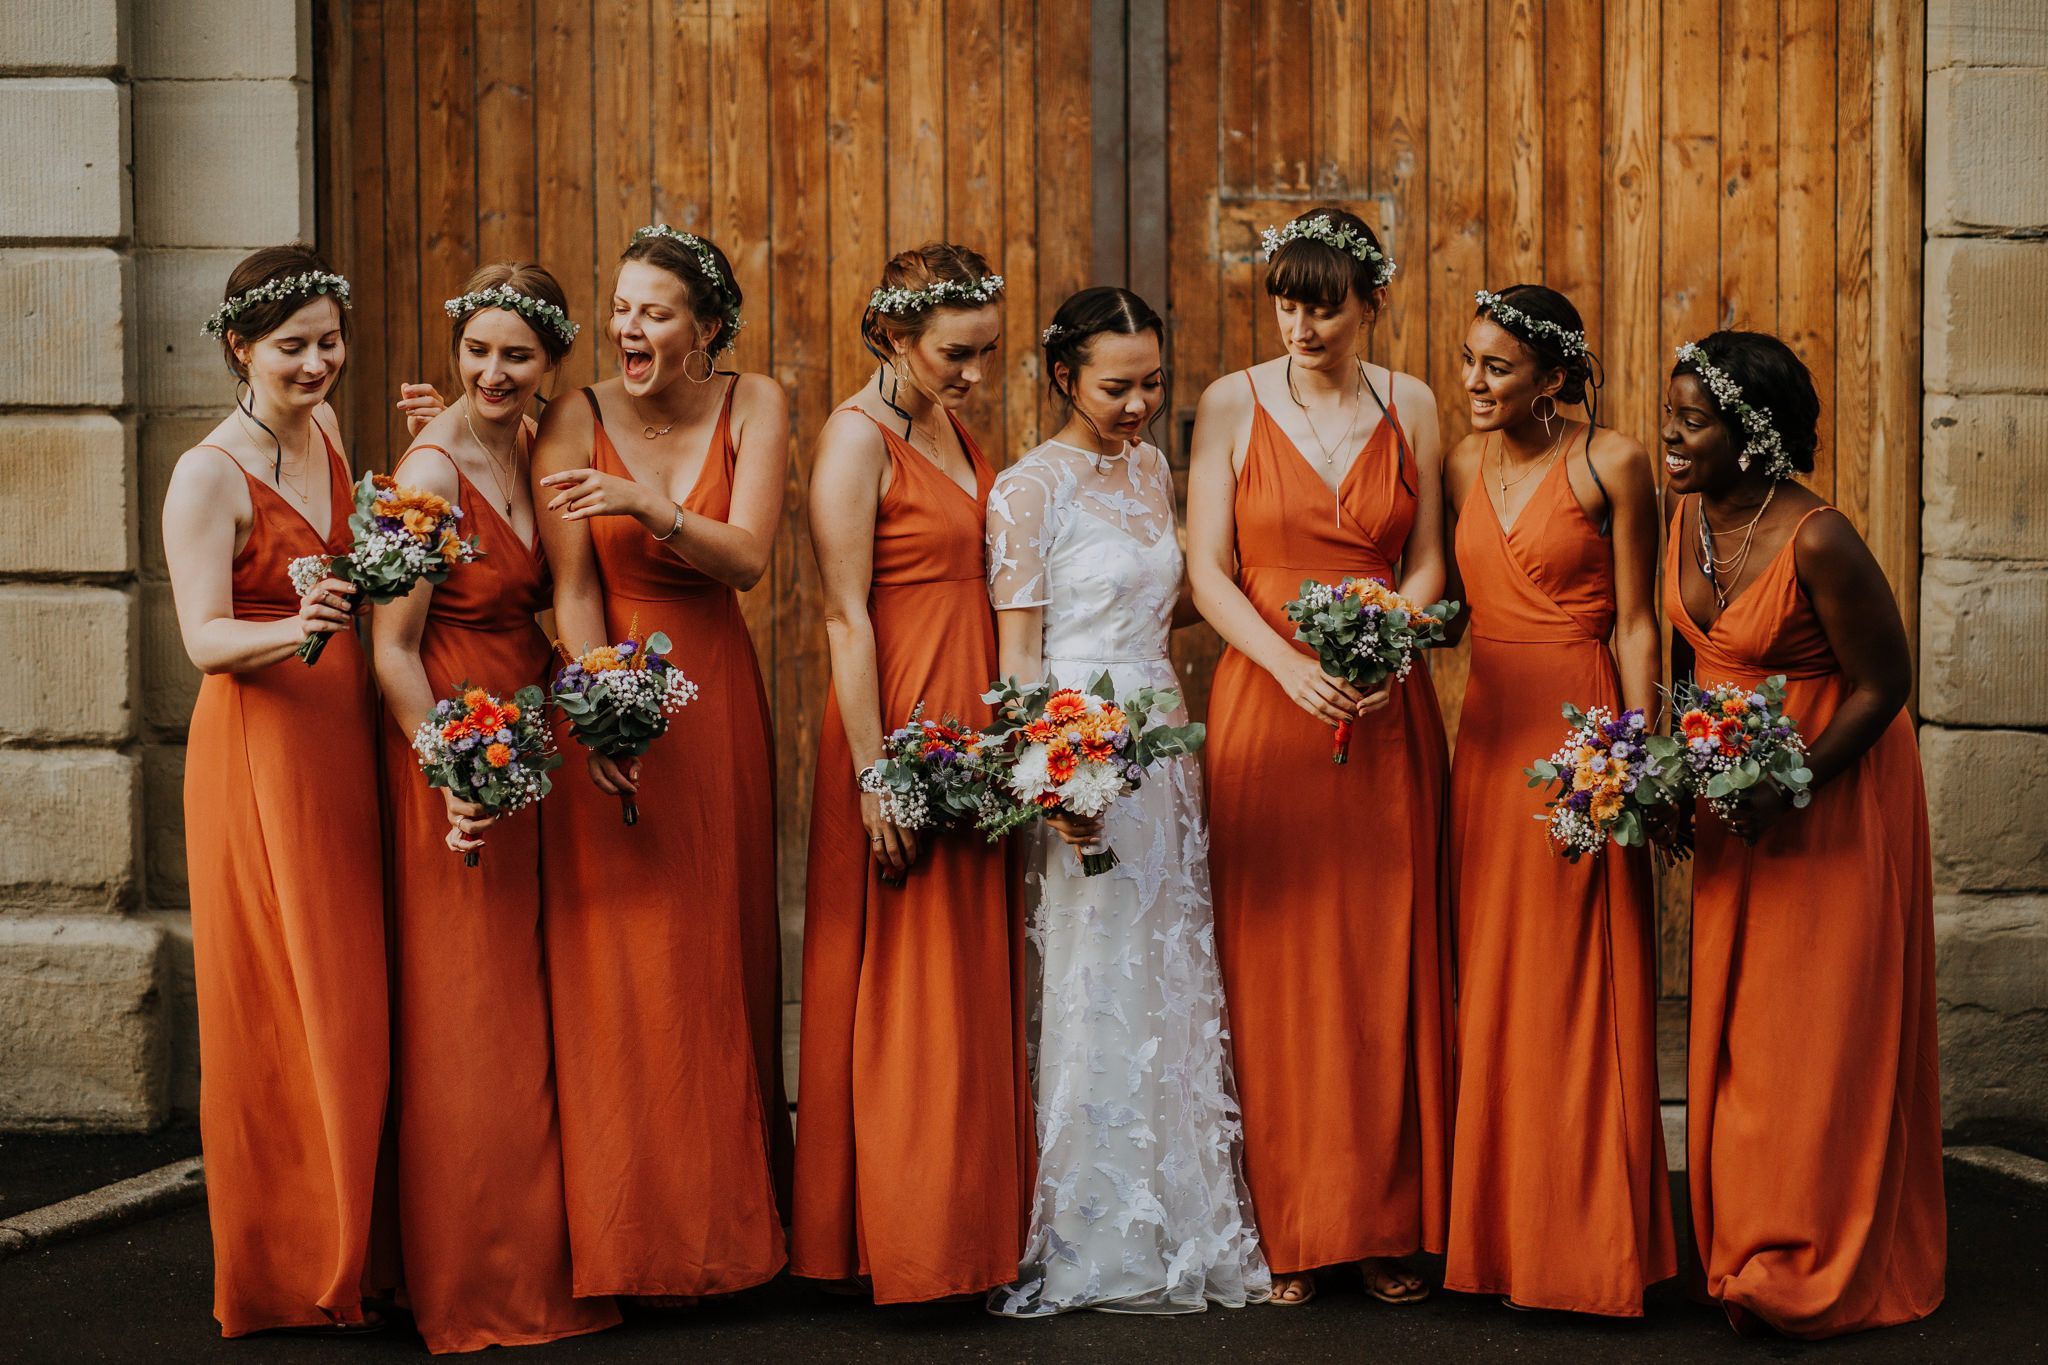 Rust Terracotta Burnt Orange Bridesmaids Dresses The Mowbray Sheffield Orange Bridesmaid Dresses Burnt Orange Bridesmaid Dresses Rust Bridesmaid Dress